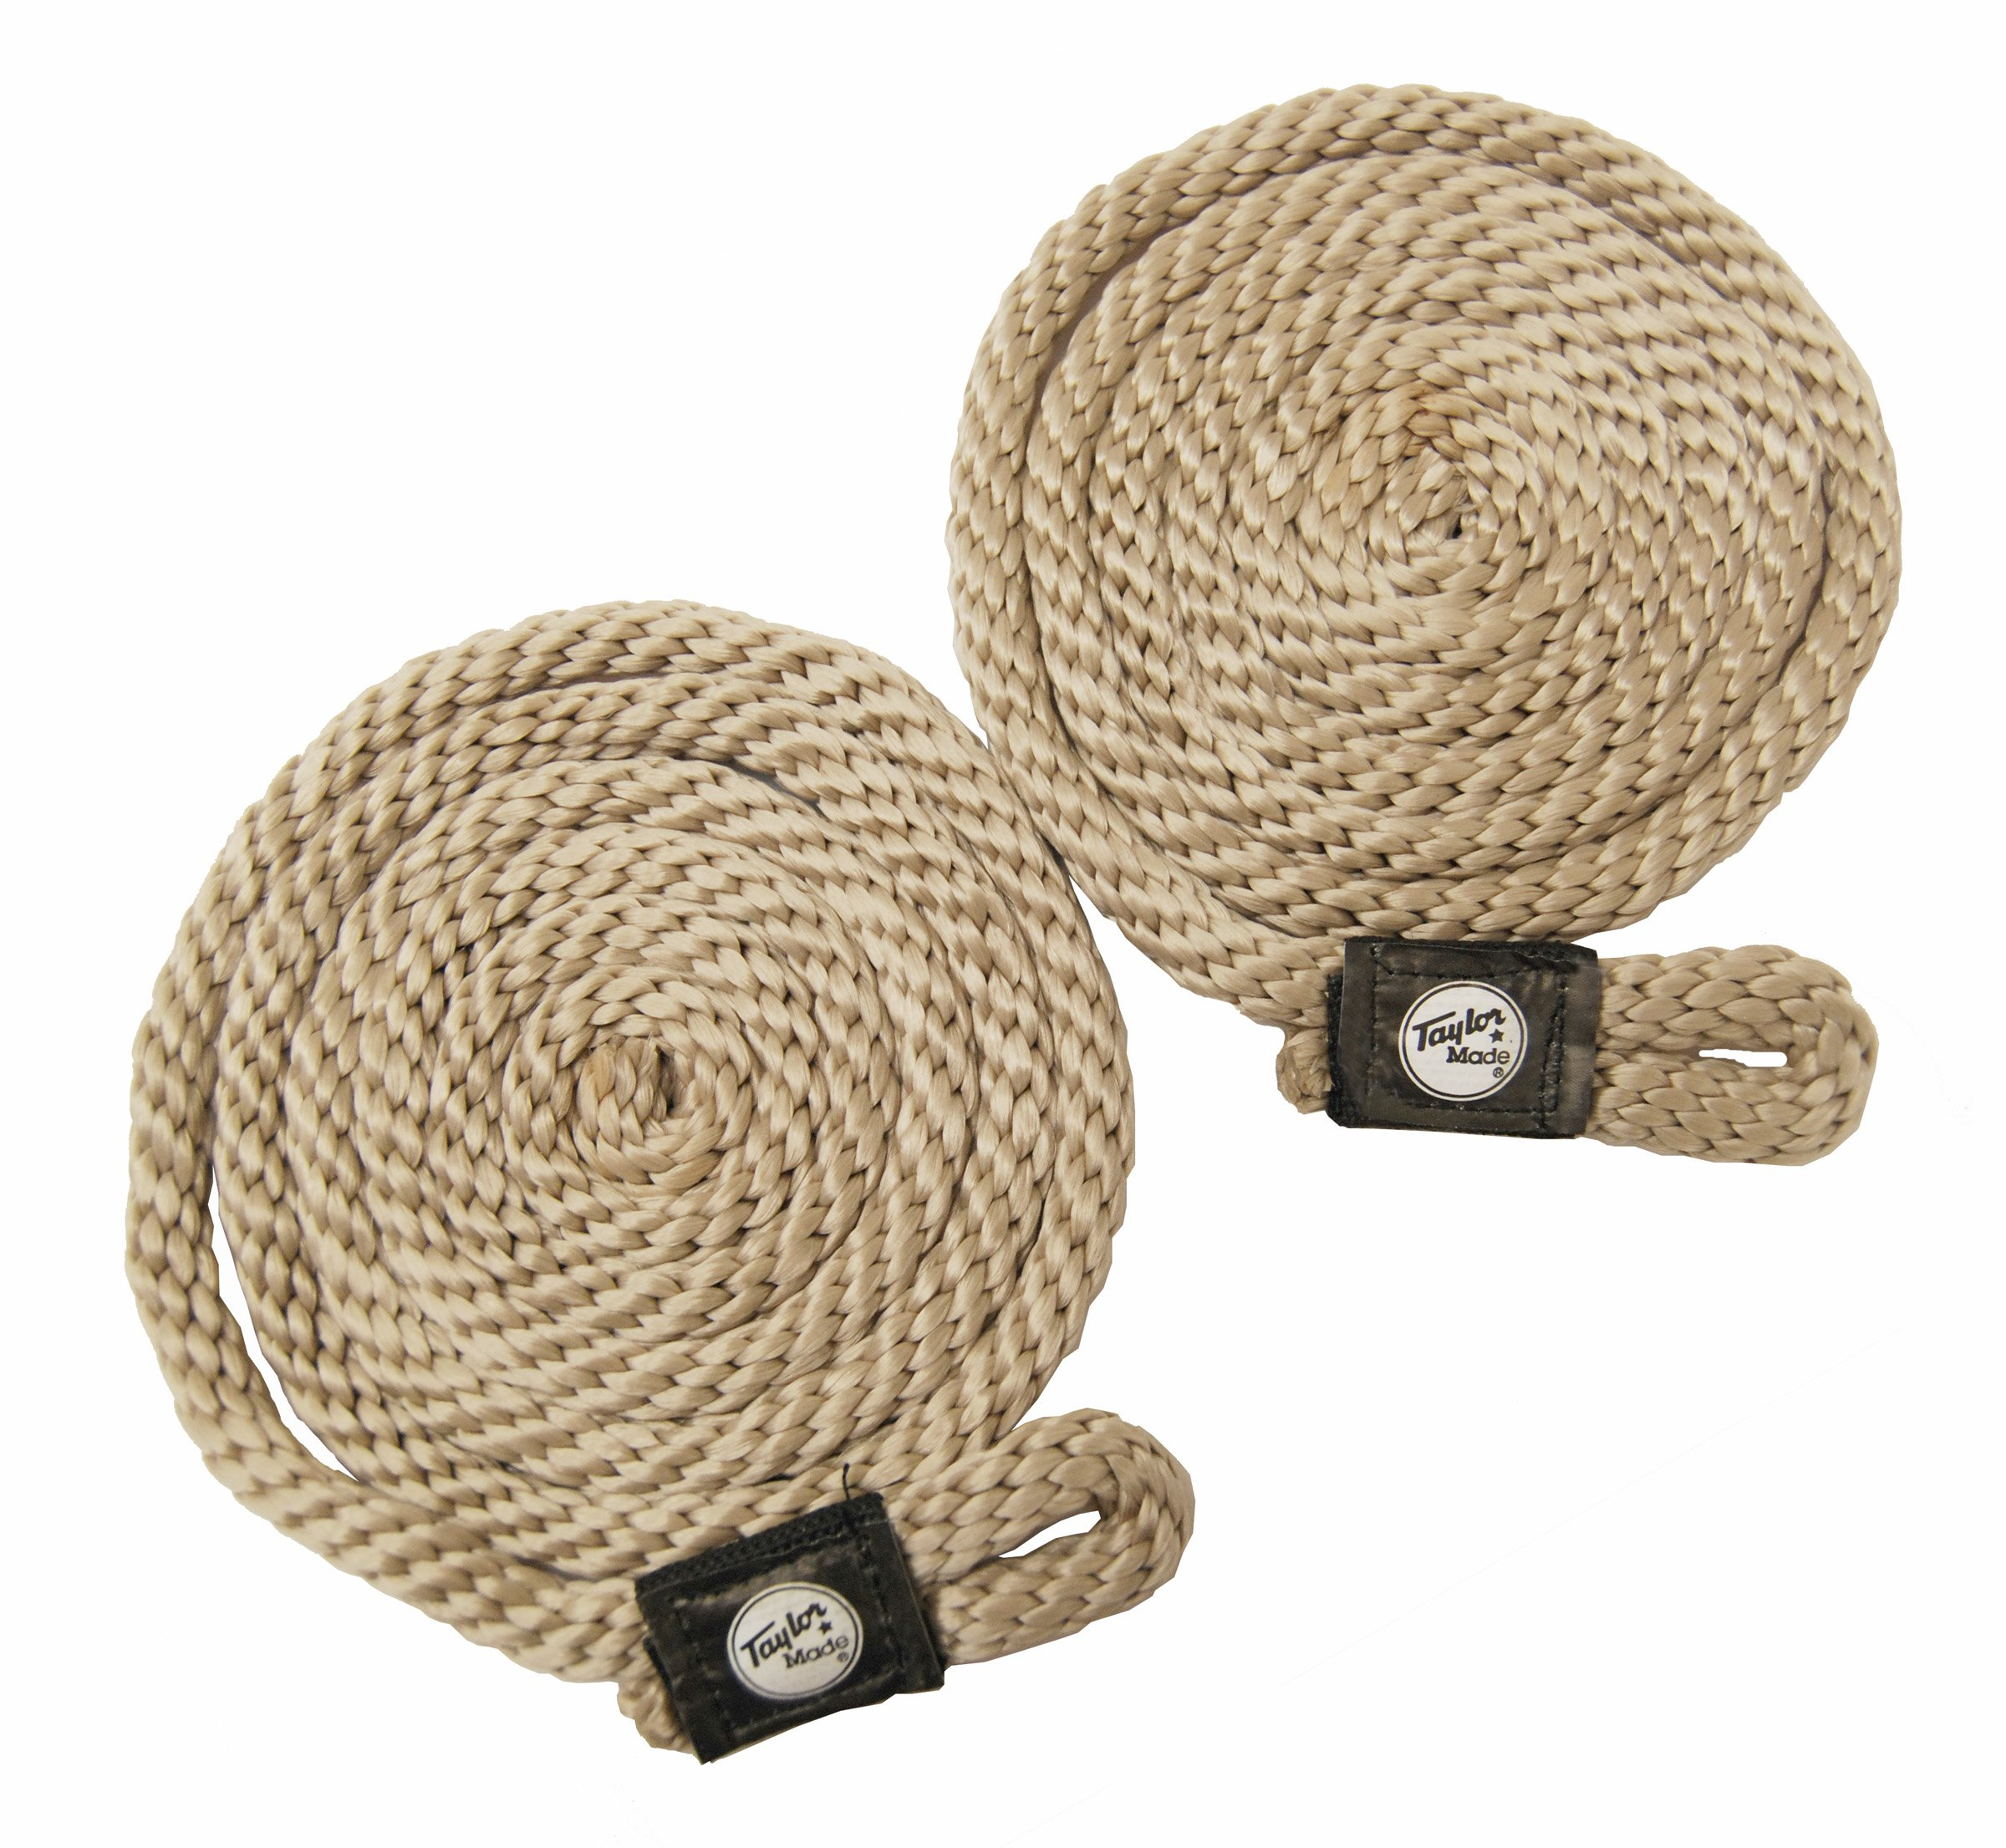 Taylor Made Products 11318 Fender Loc Line, 3/8 inch x 72 inch, Sand, 2 Pack by TAYLOR MADE PRODUCTS